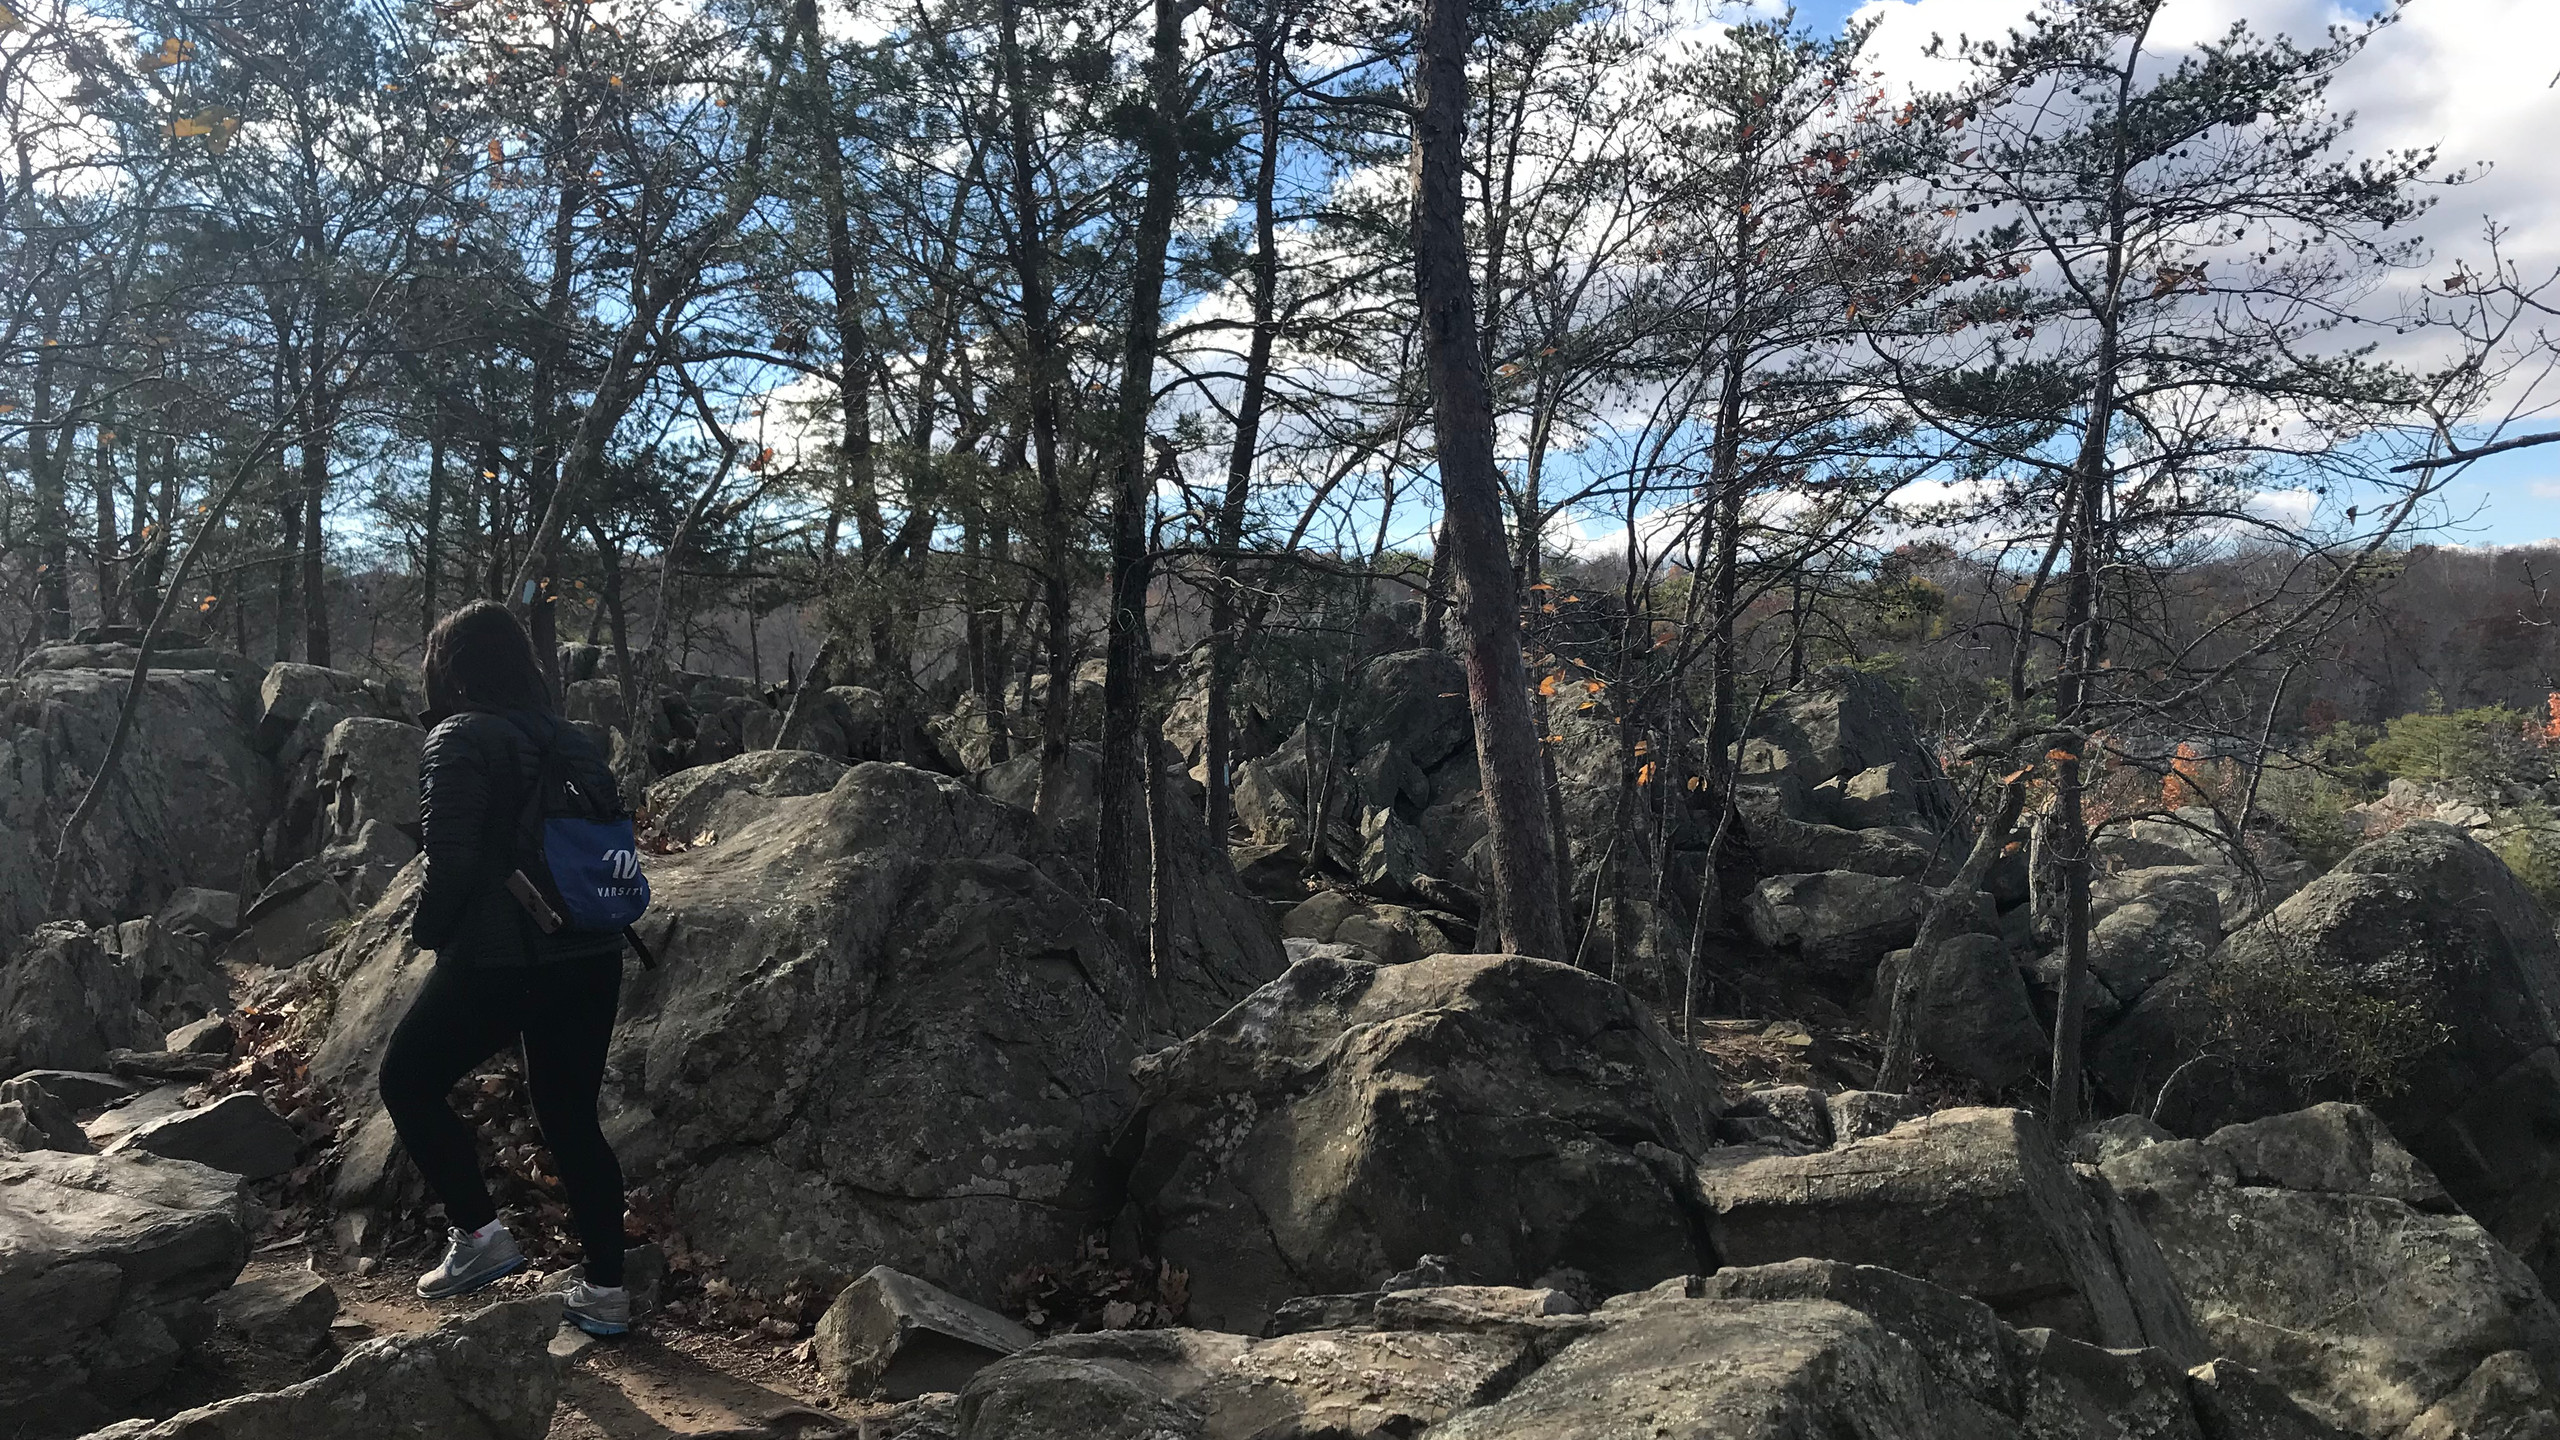 Easier Part of the Billy Goat Trail